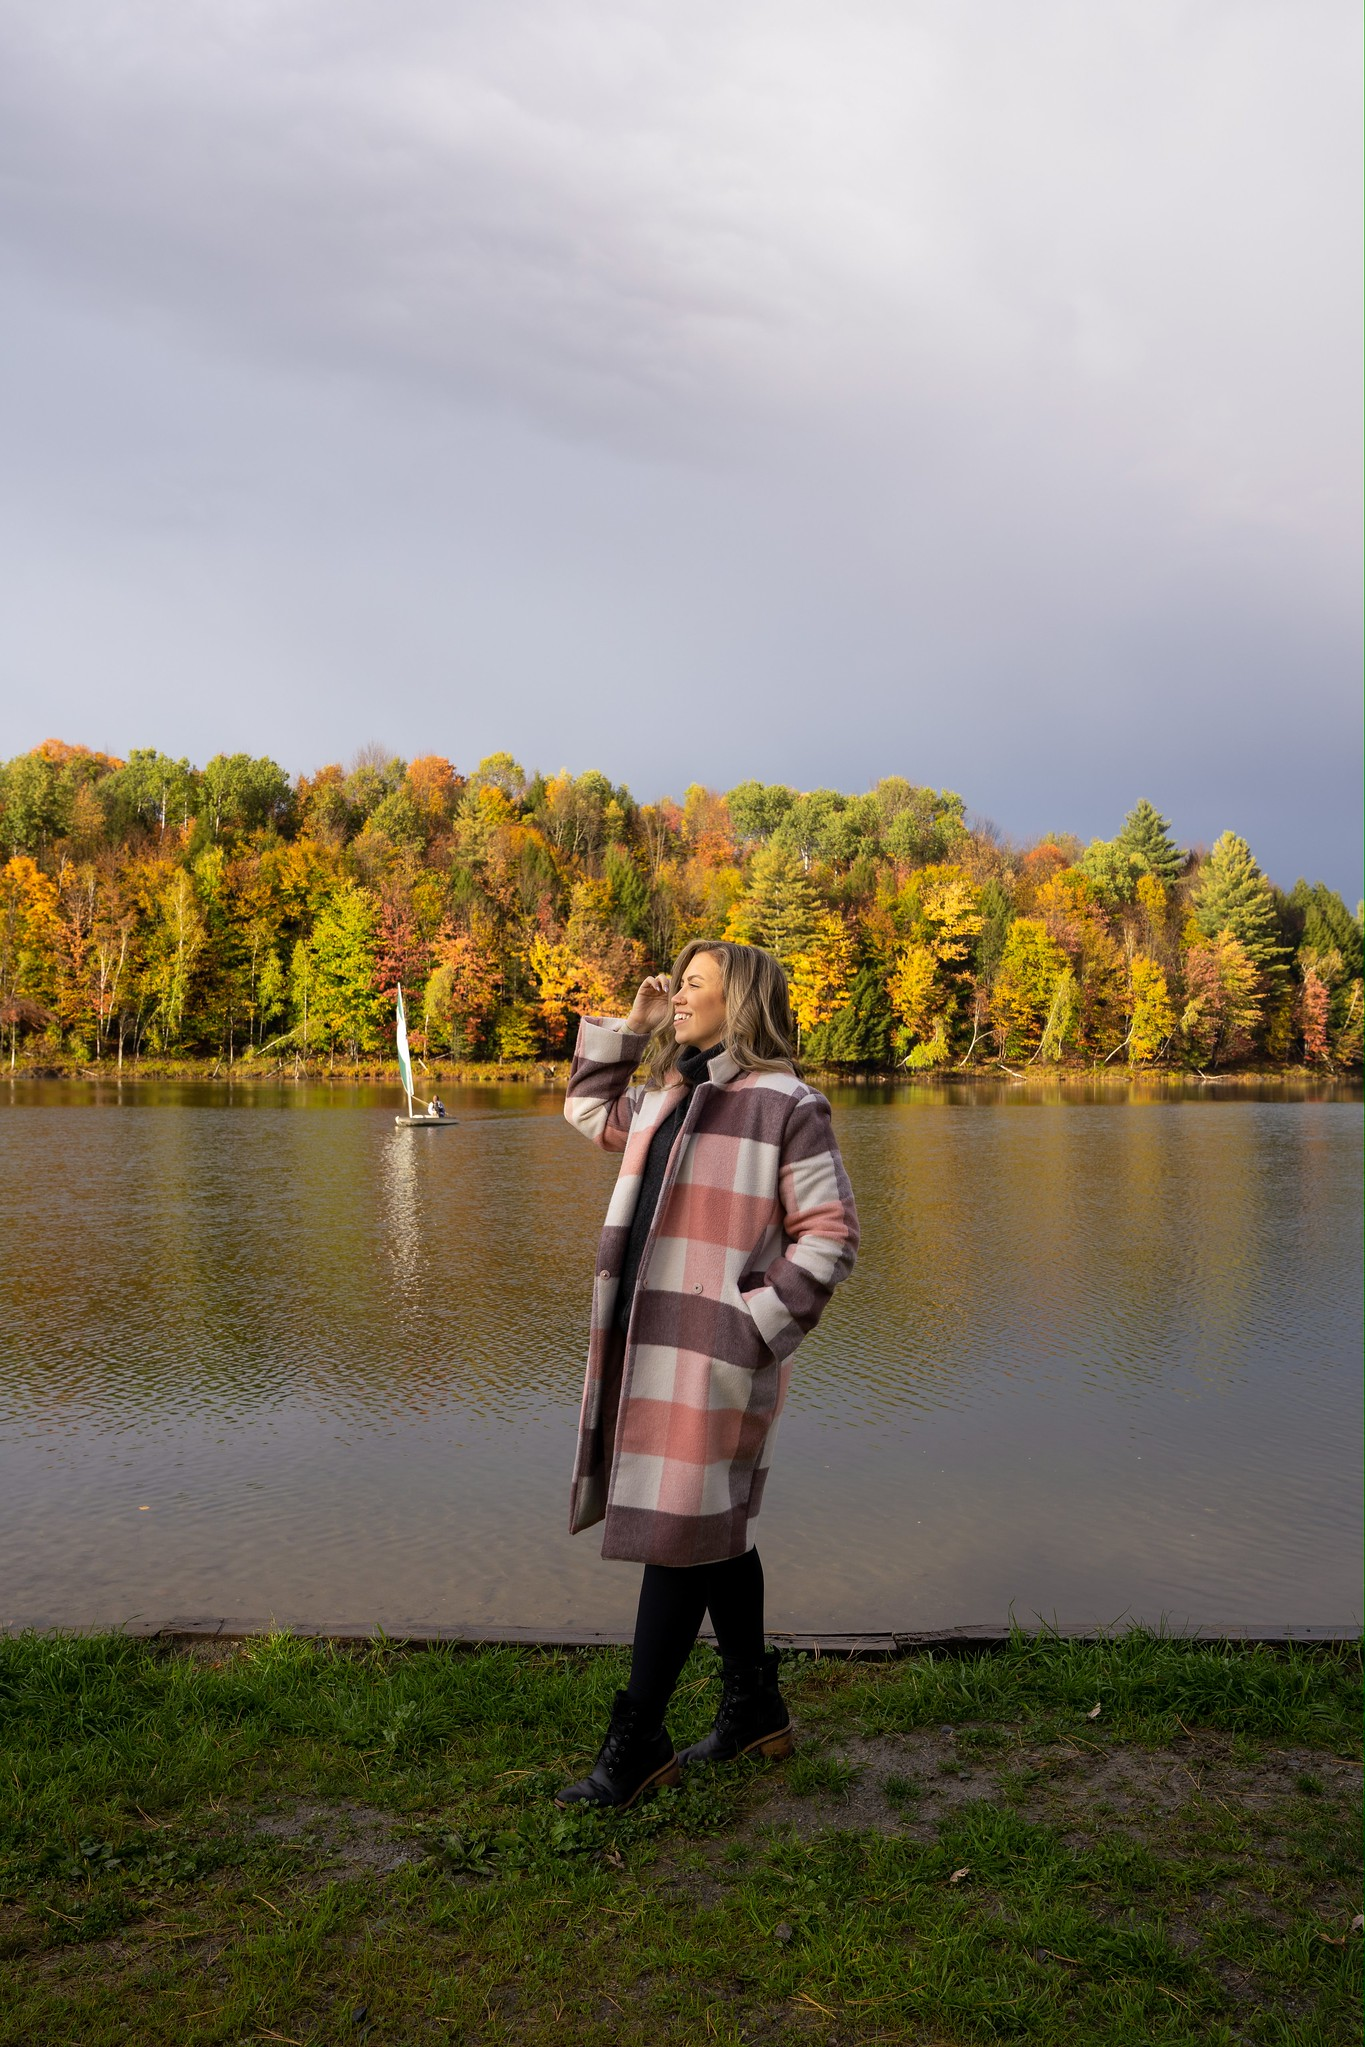 Pink Plaid Winter Coat | Waterbury Center State Park | What to Wear in Vermont in the Fall | Vermont Packing List for Fall | What to Wear in Vermont in October | What to Wear on a Fall Vacation | Fall Outfits